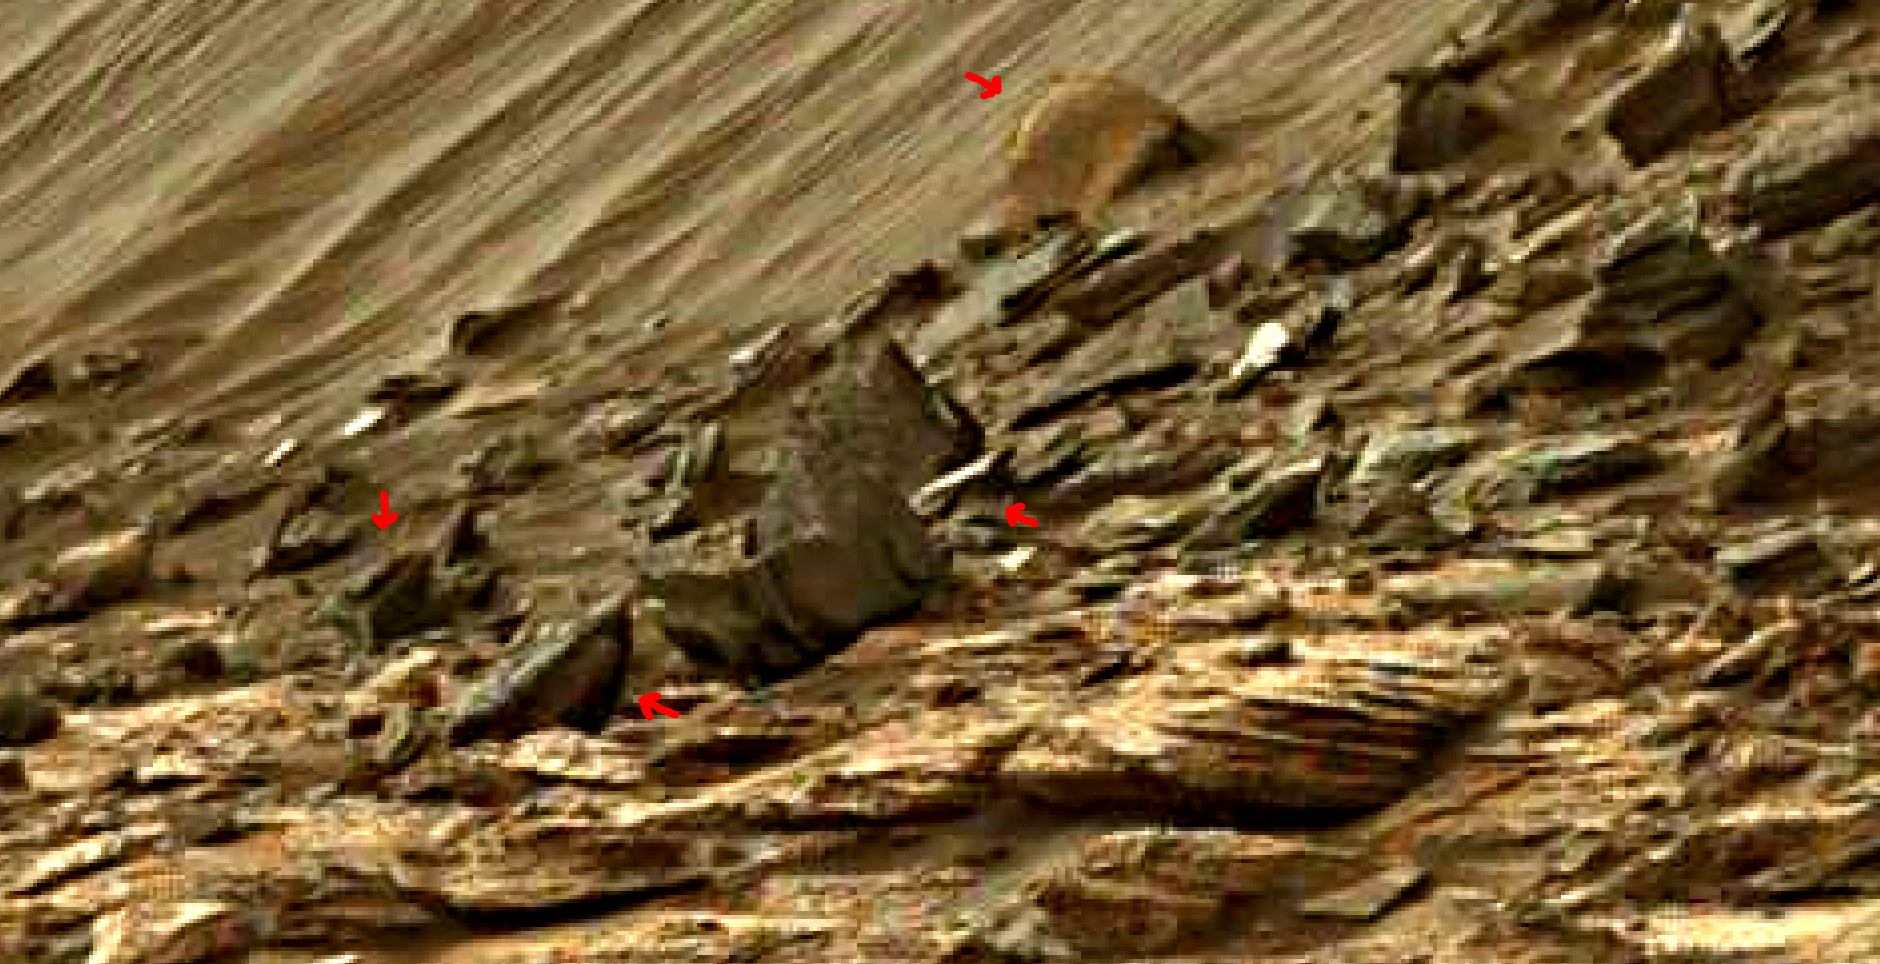 mars-sol-1454-anomaly-artifacts-33-was-life-on-mars